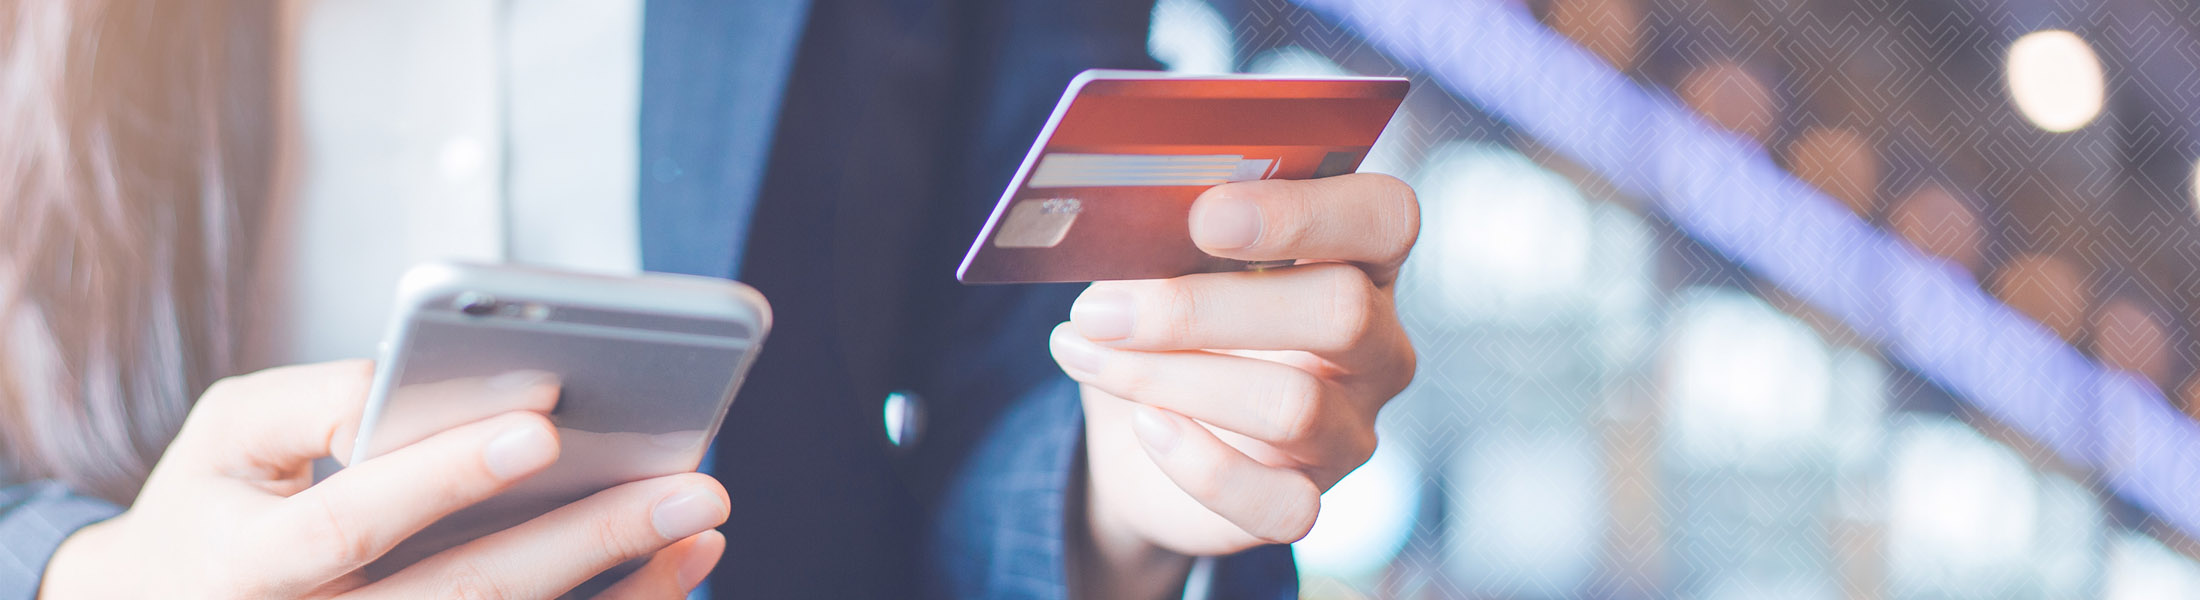 Problems Meeting PCI DSS? CASBs Can Help.